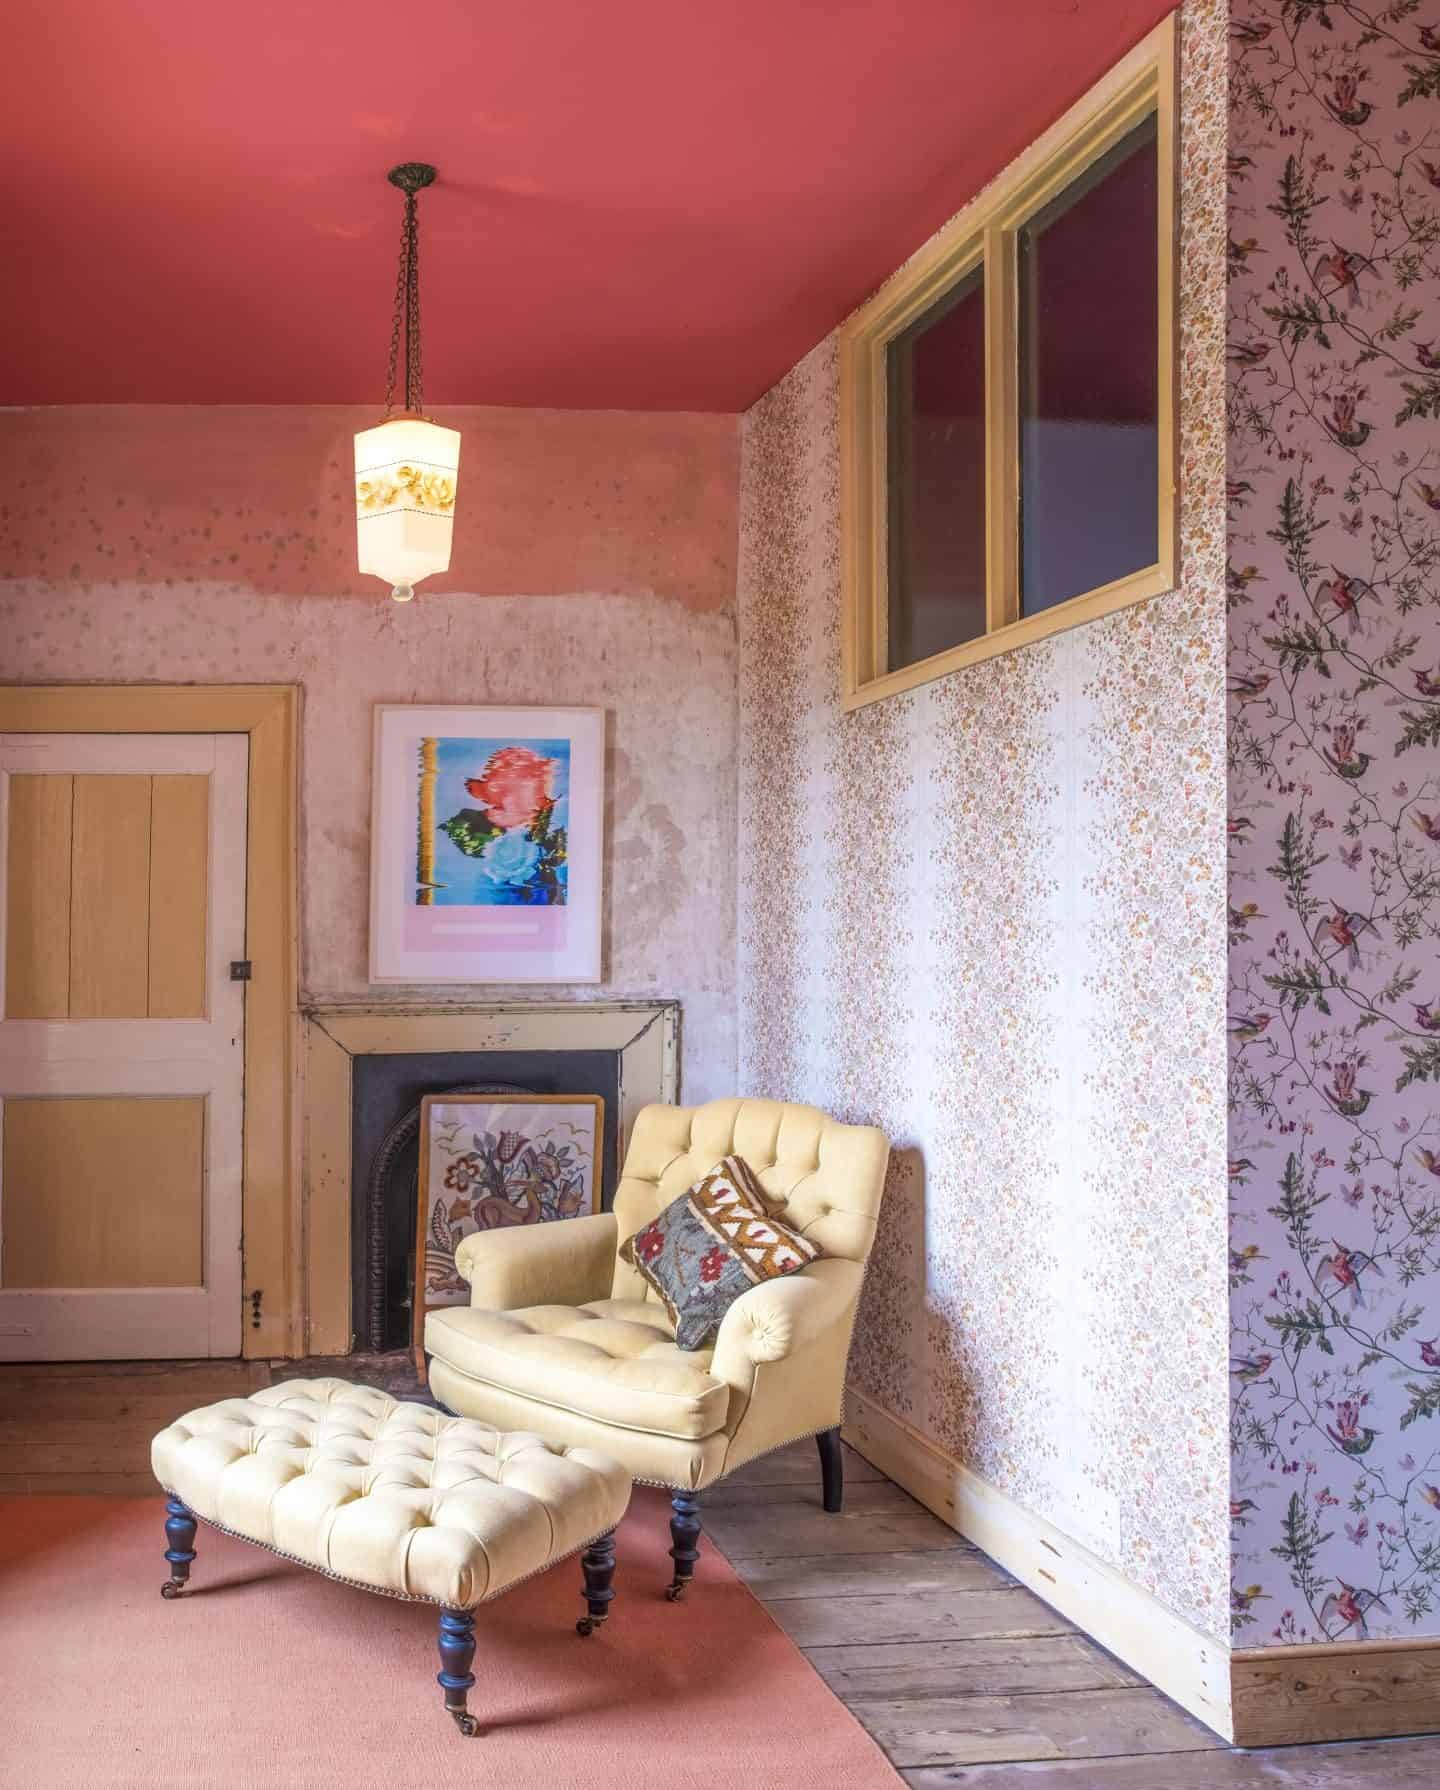 Image from the book Love Colour ©annastarmer - a floral wallpaper with plain traditional chair in front